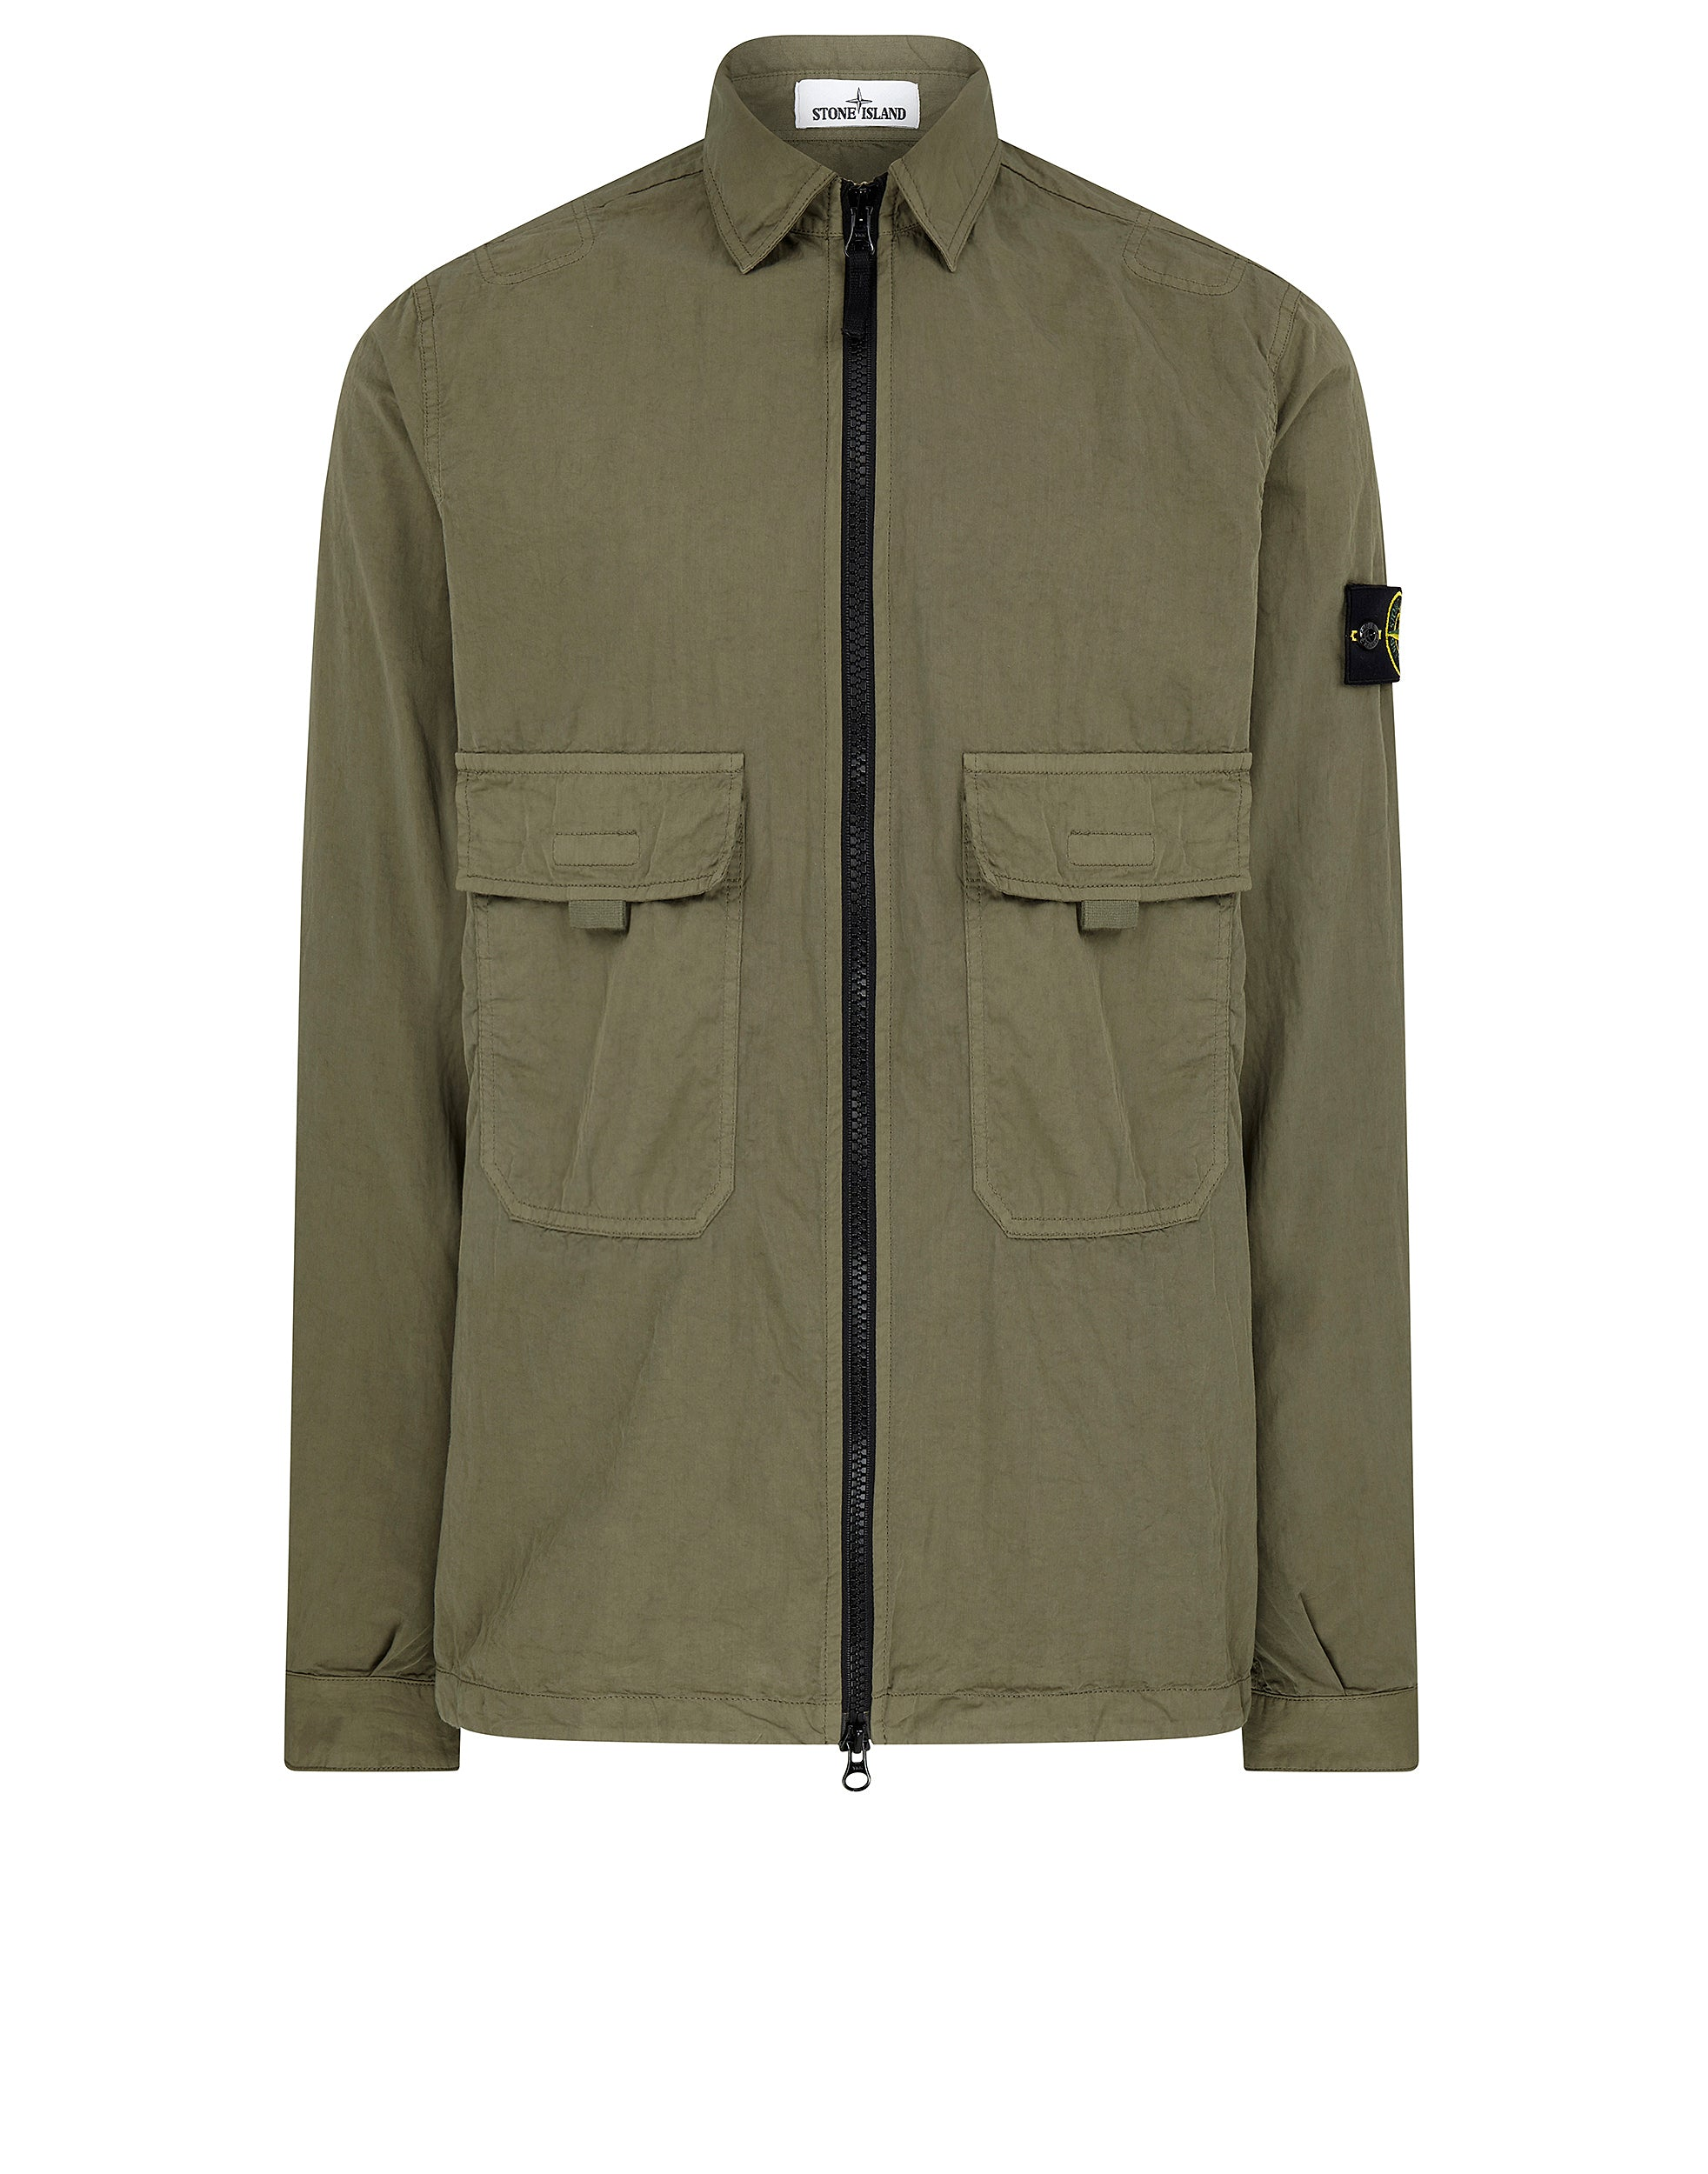 10303 T.CO+OLD Overshirt in Olive